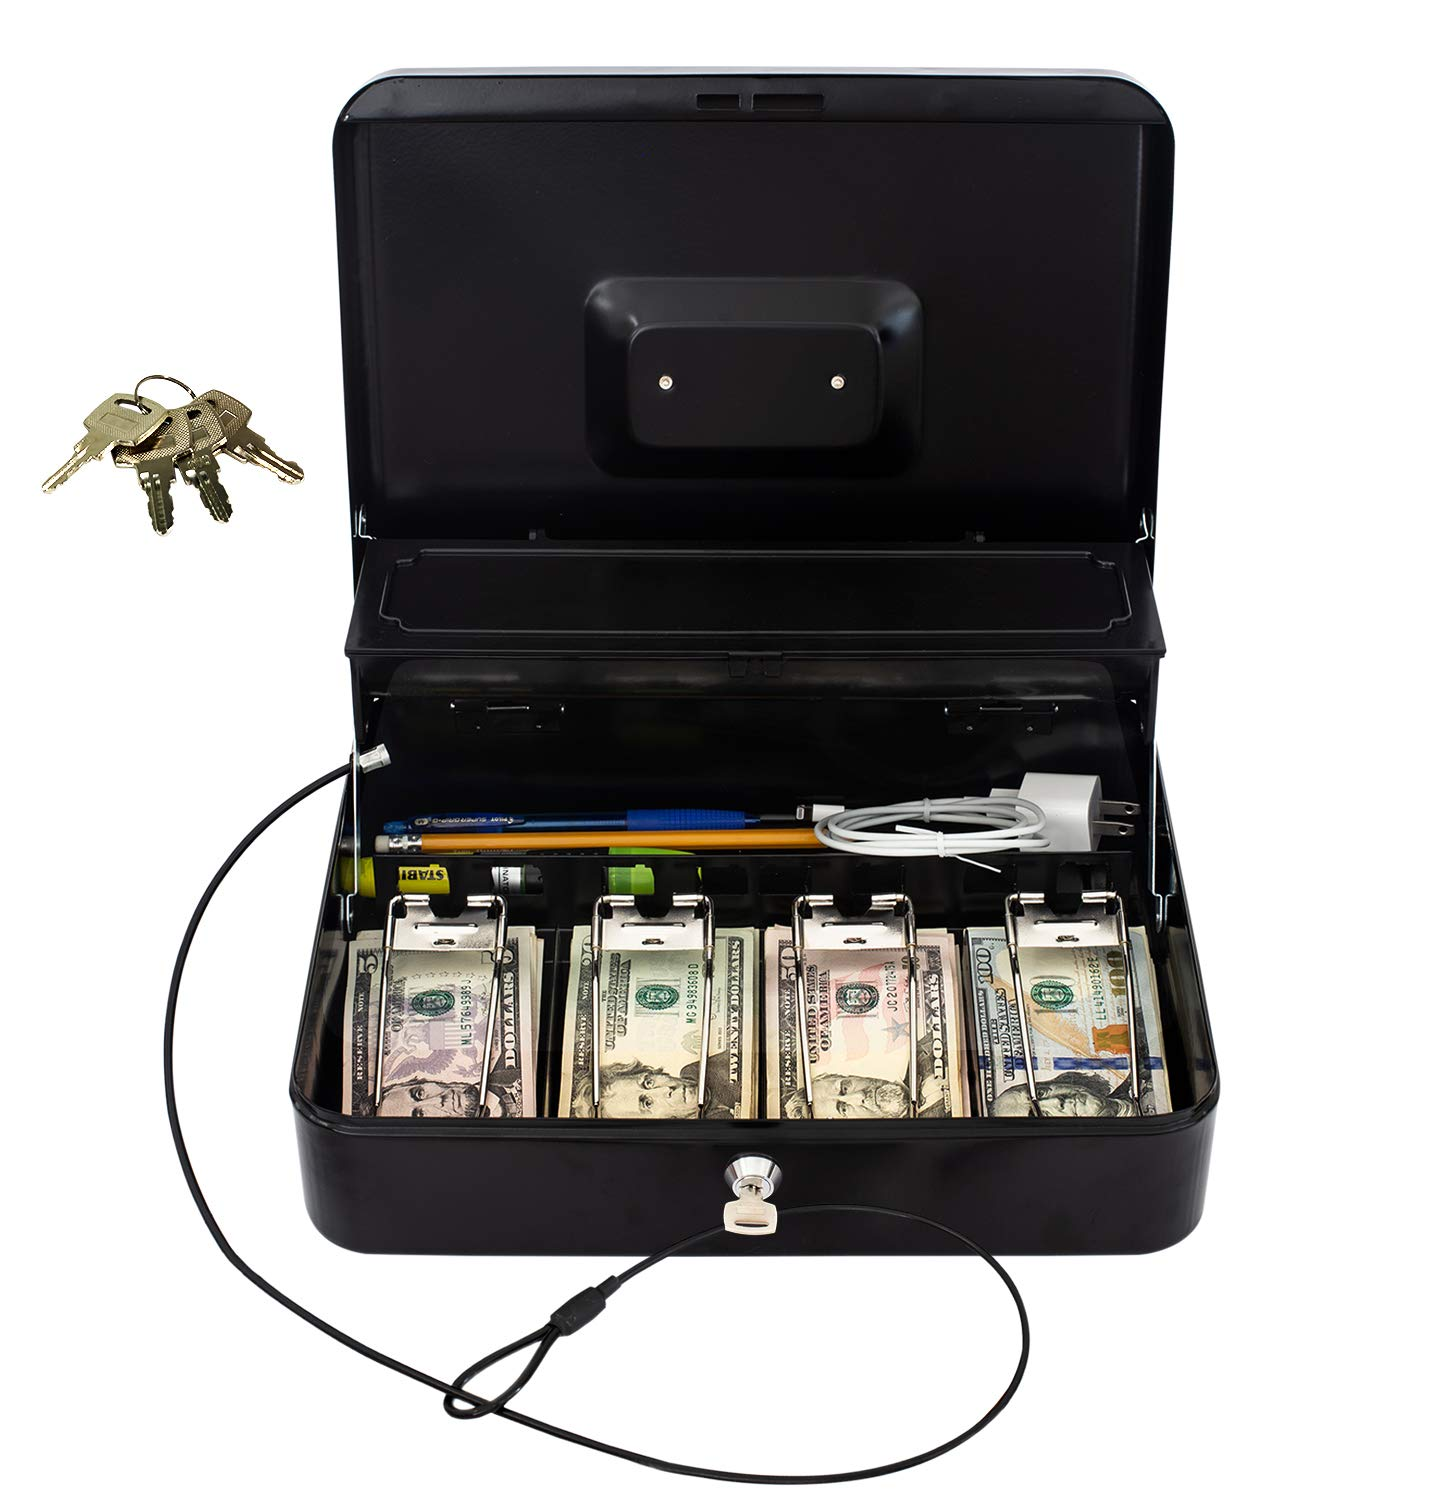 Cash Box by OSAFE - Money Box with Lock & Security Cable - Cash Safe Box with New Lid Coin Tray, 5 Compartments, 4 Spring Loaded - Large 3.5H x 9.5W x 11.8L Inch Metal Money Box with 4 Keys - Black by OSafe